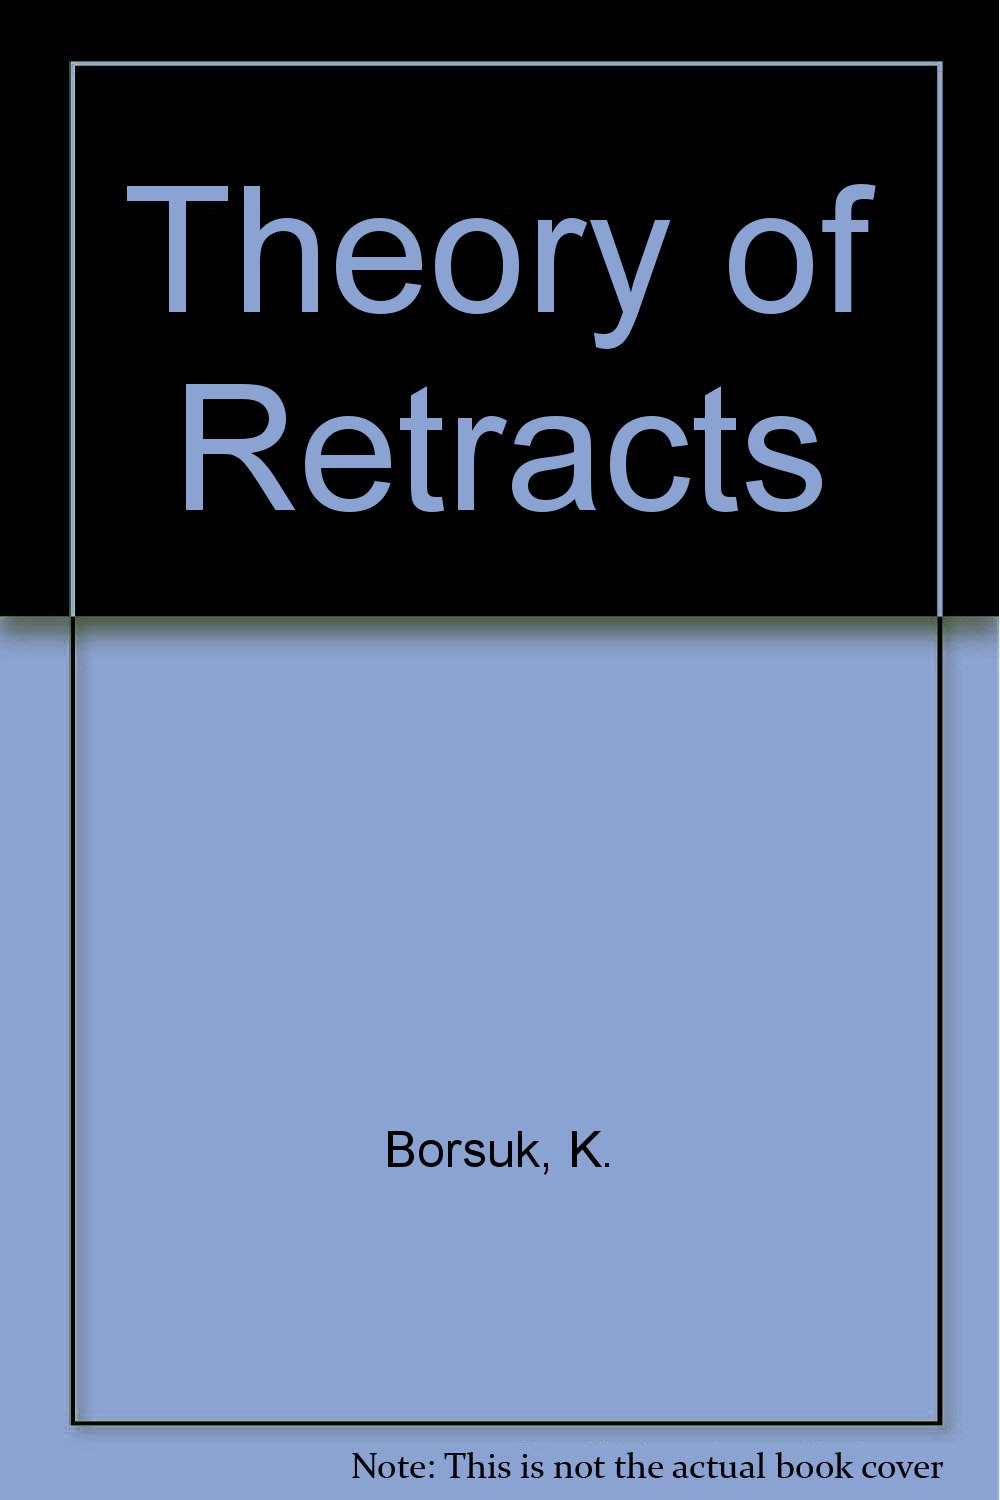 Theory of retracts